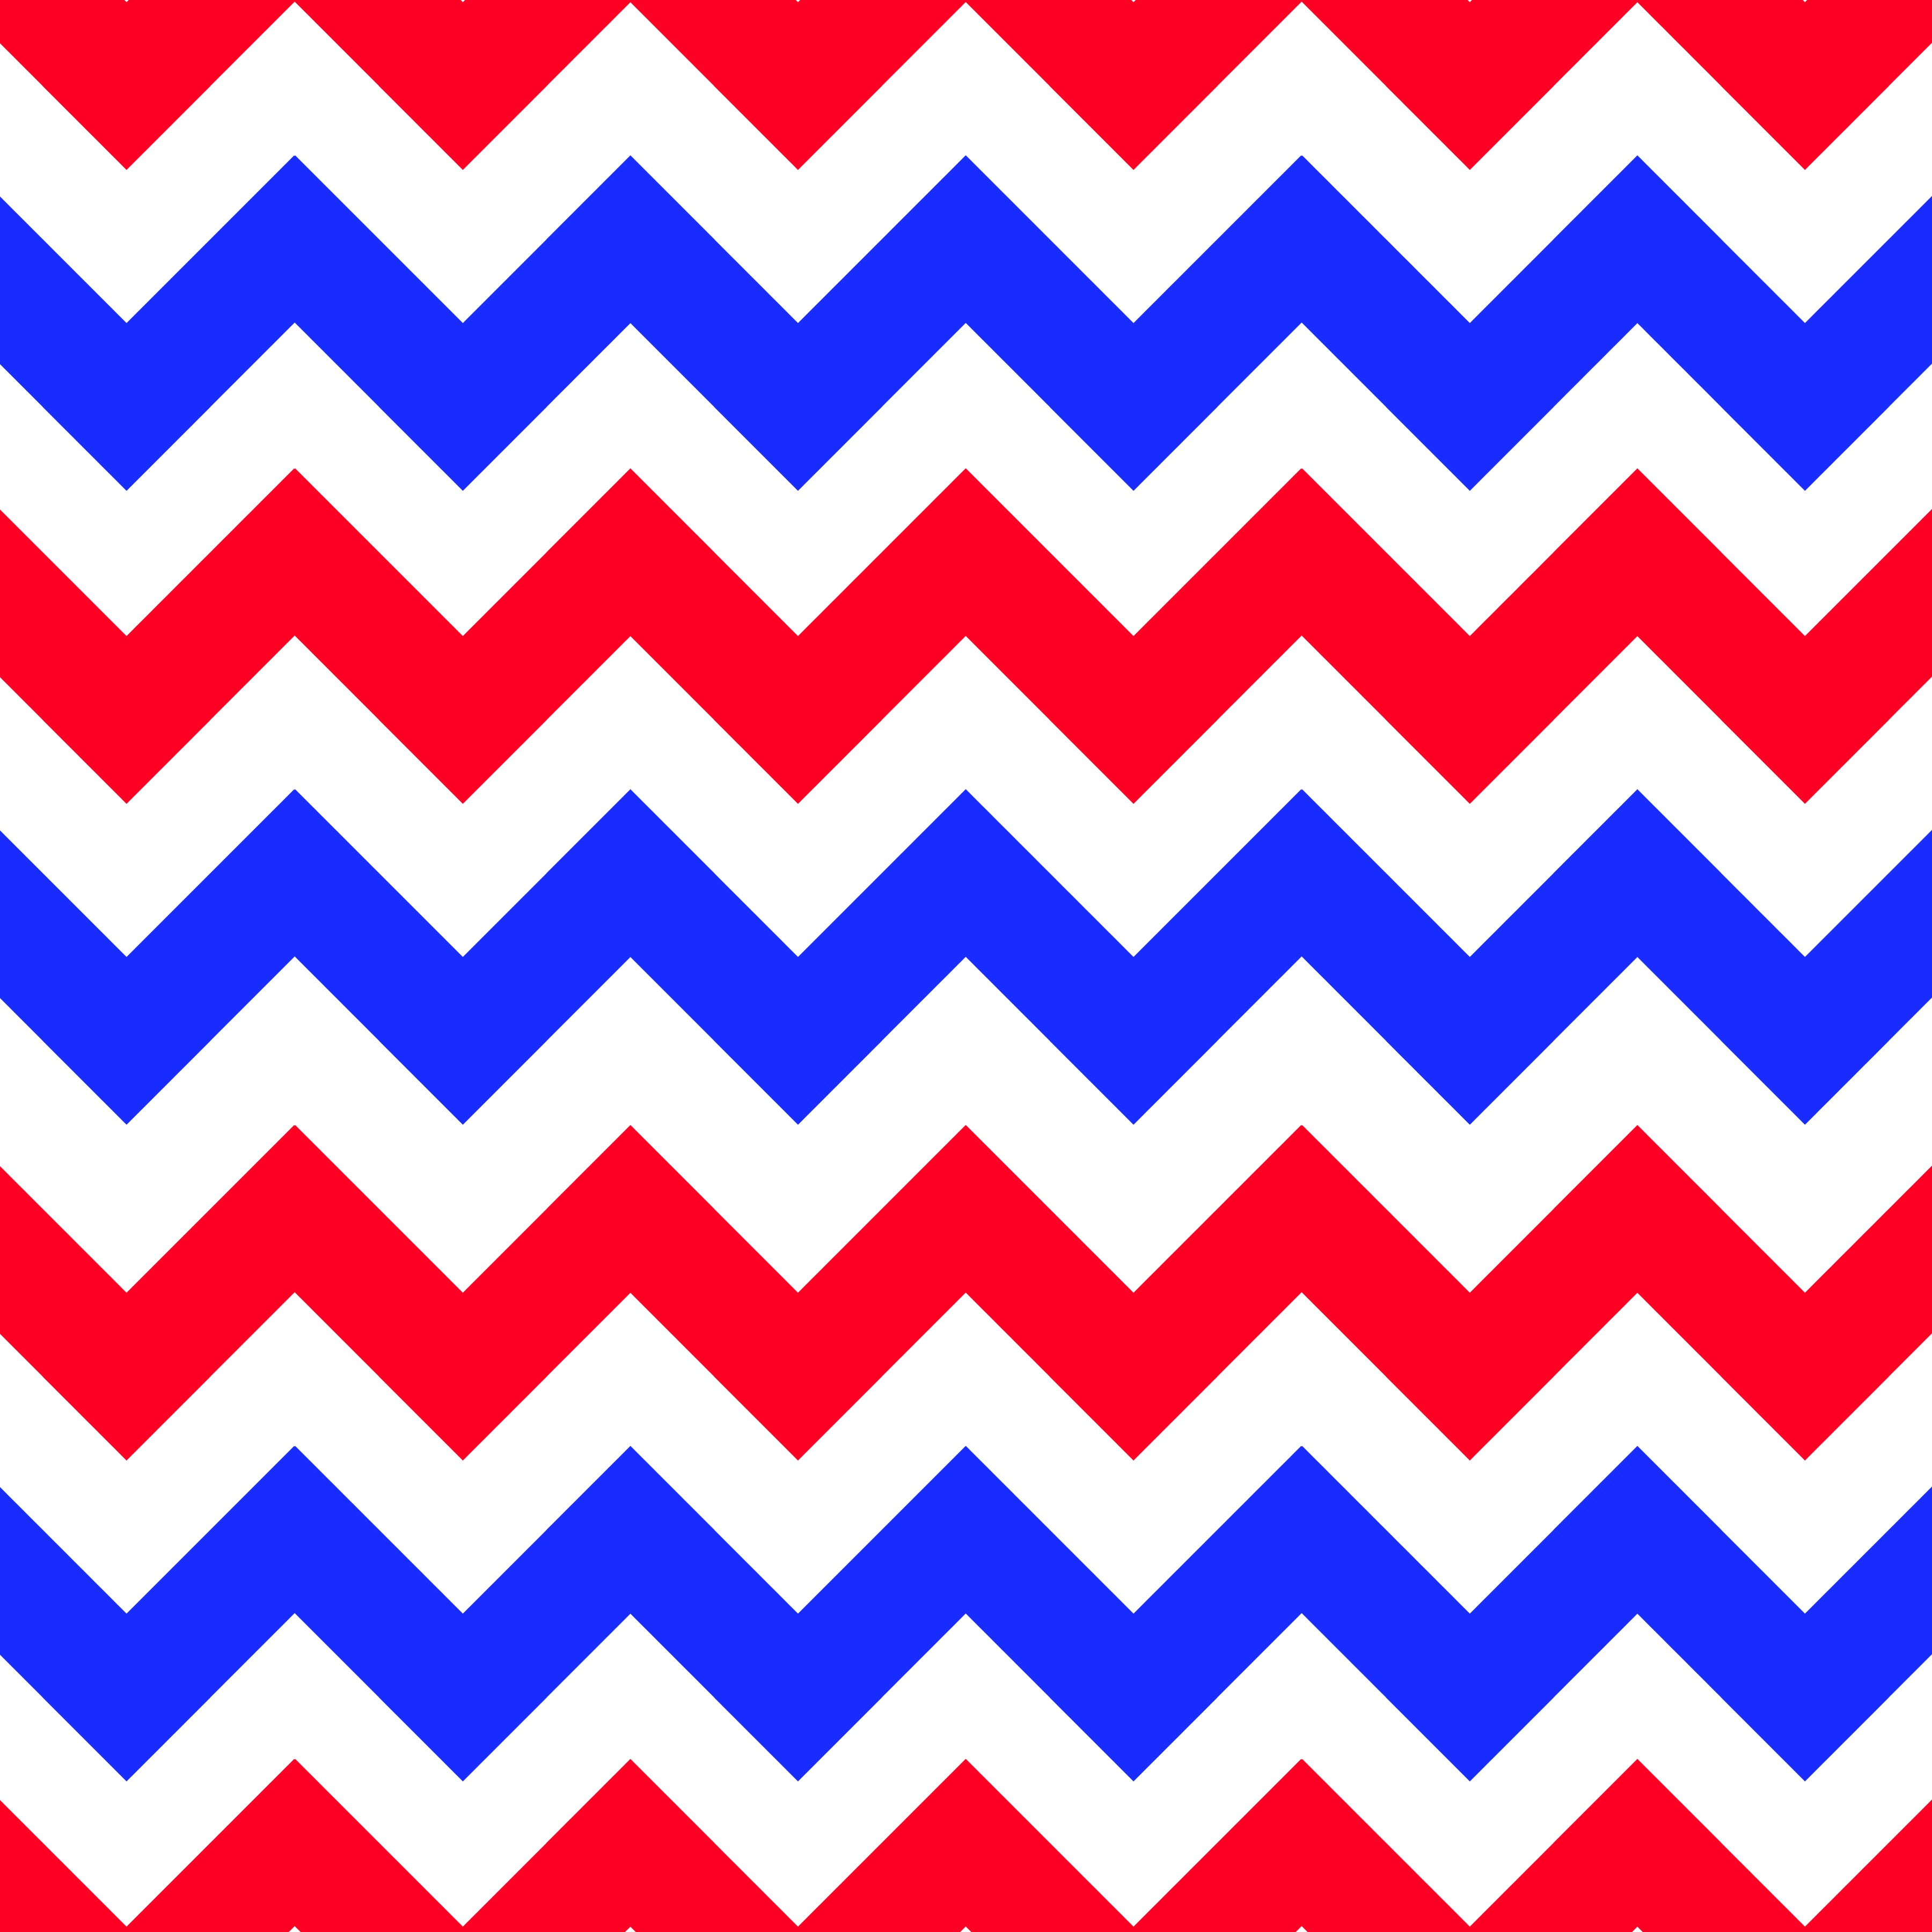 Free Patriotic Background Images, Download Free Clip Art, Free Clip - Free Printable Patriotic Scrapbook Paper